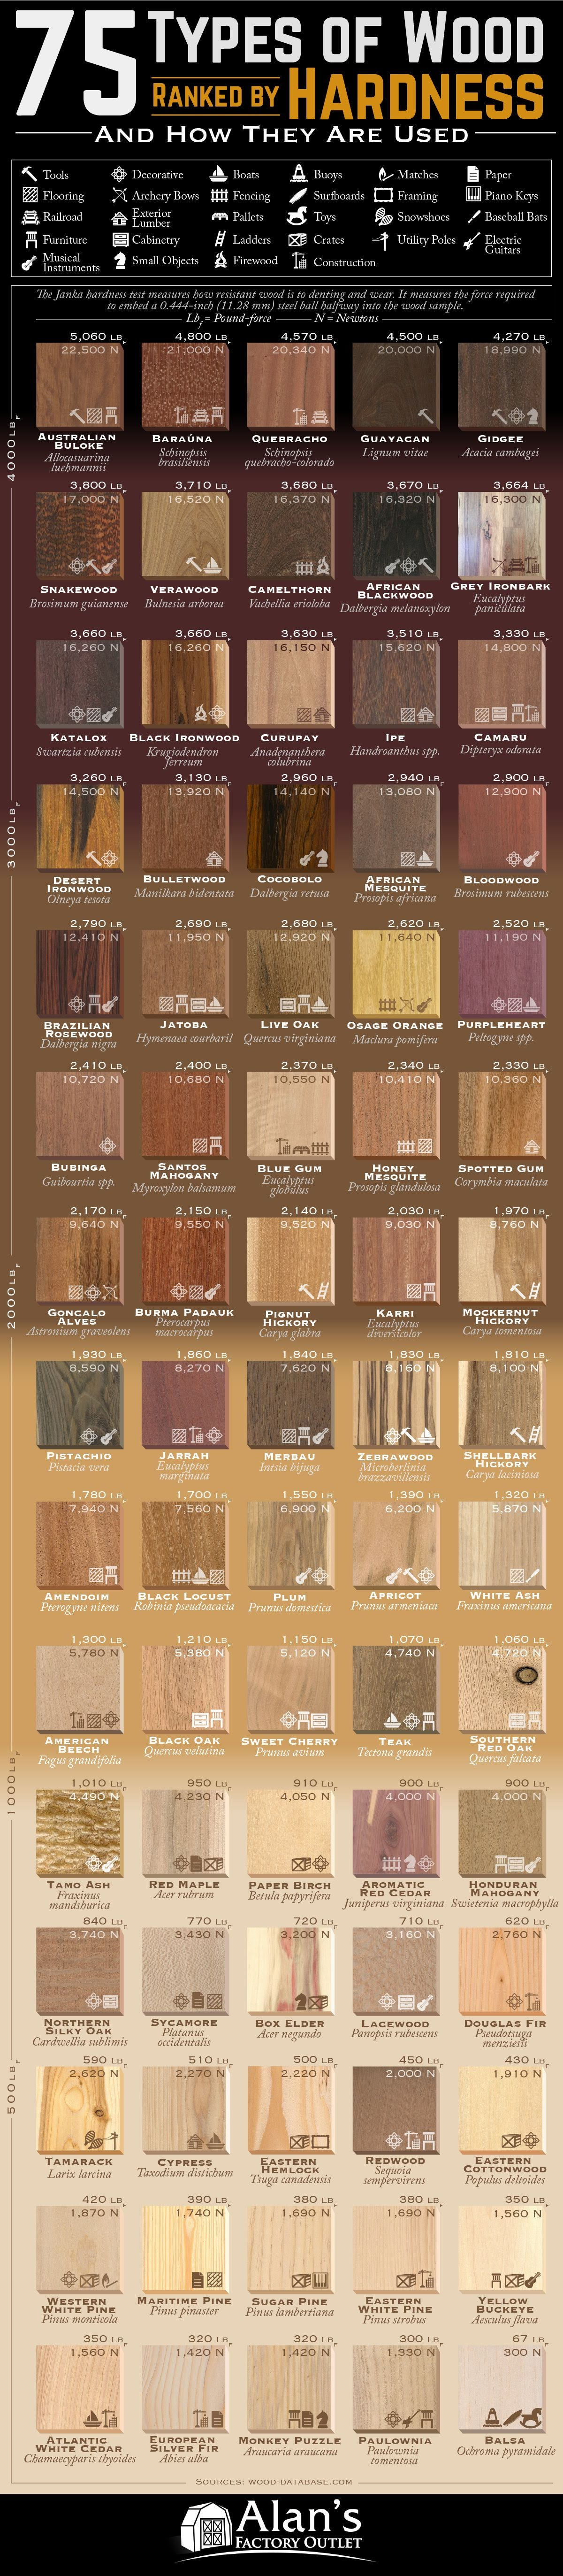 75 Types of Wood Ranked by Janka Hardness and How They Are Used #infographic